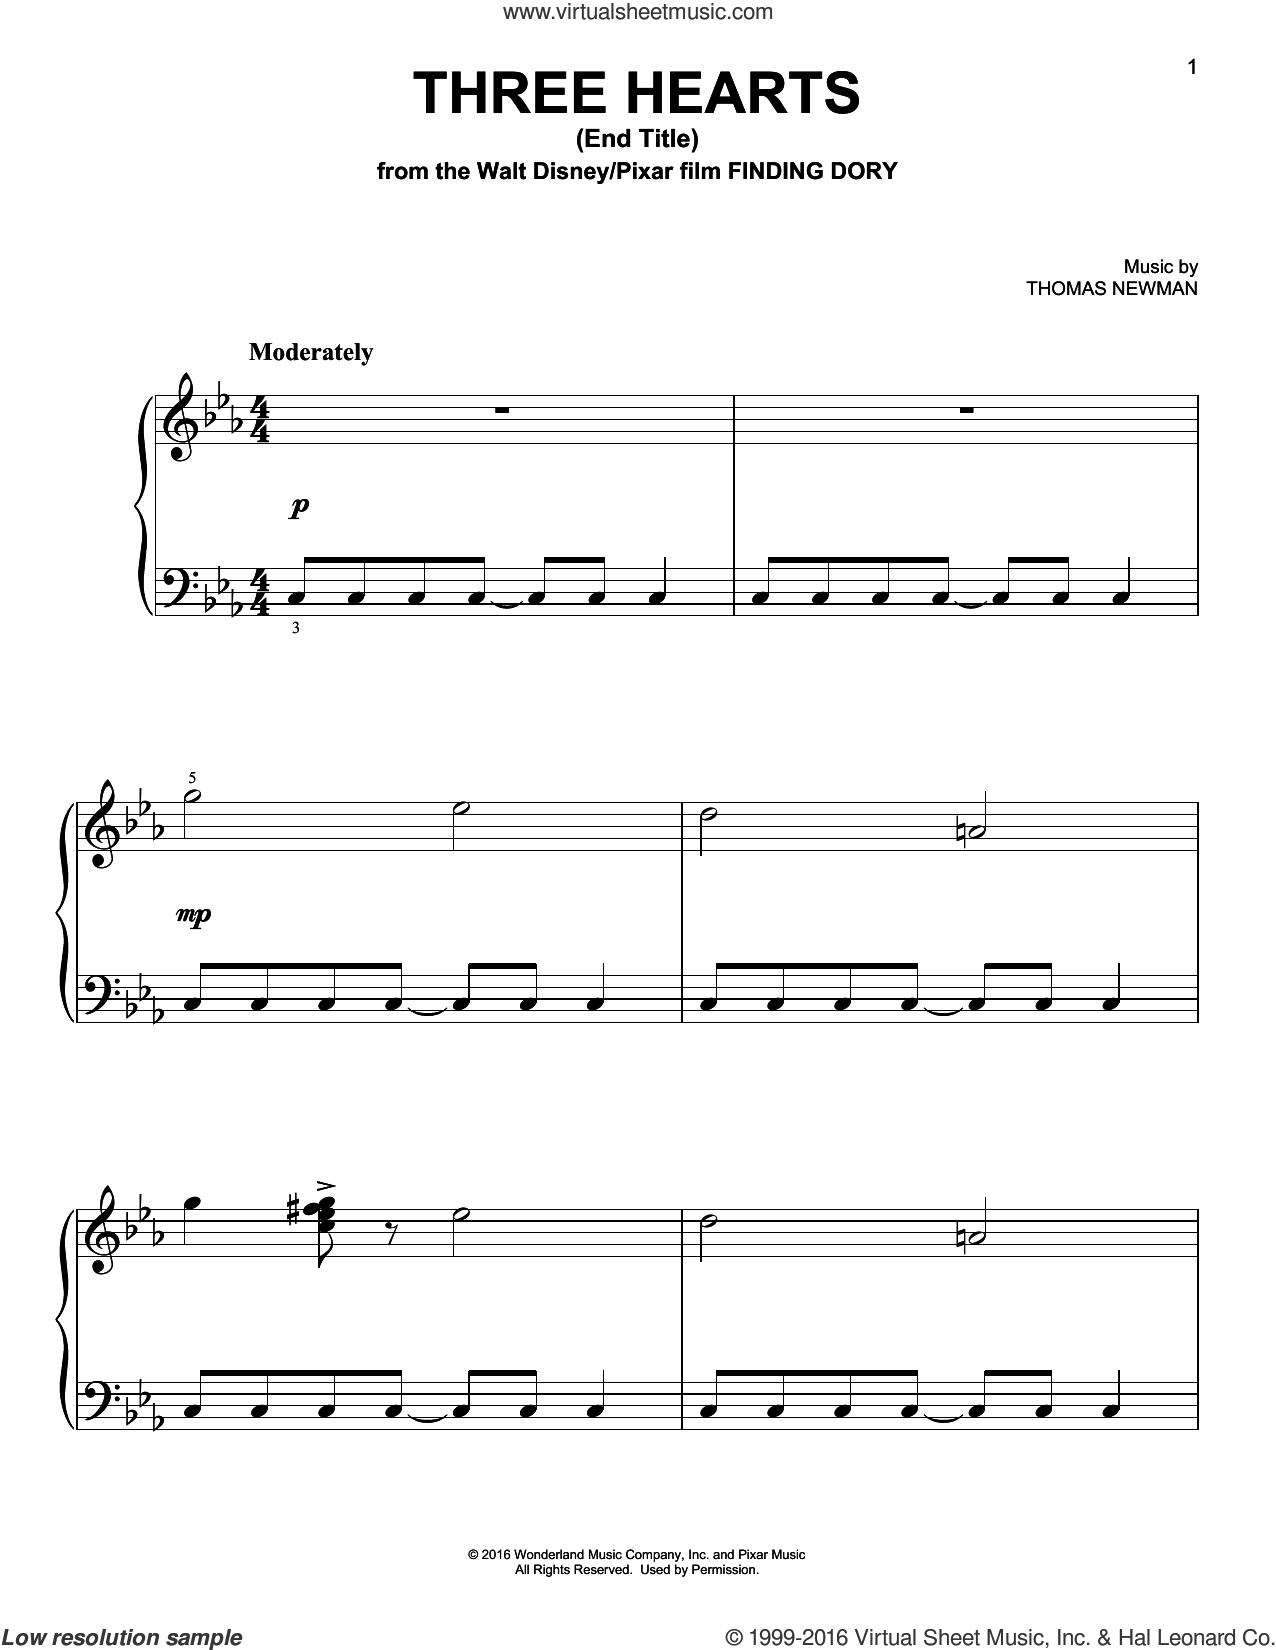 Three Hearts (End Title) sheet music for piano solo by Thomas Newman. Score Image Preview.